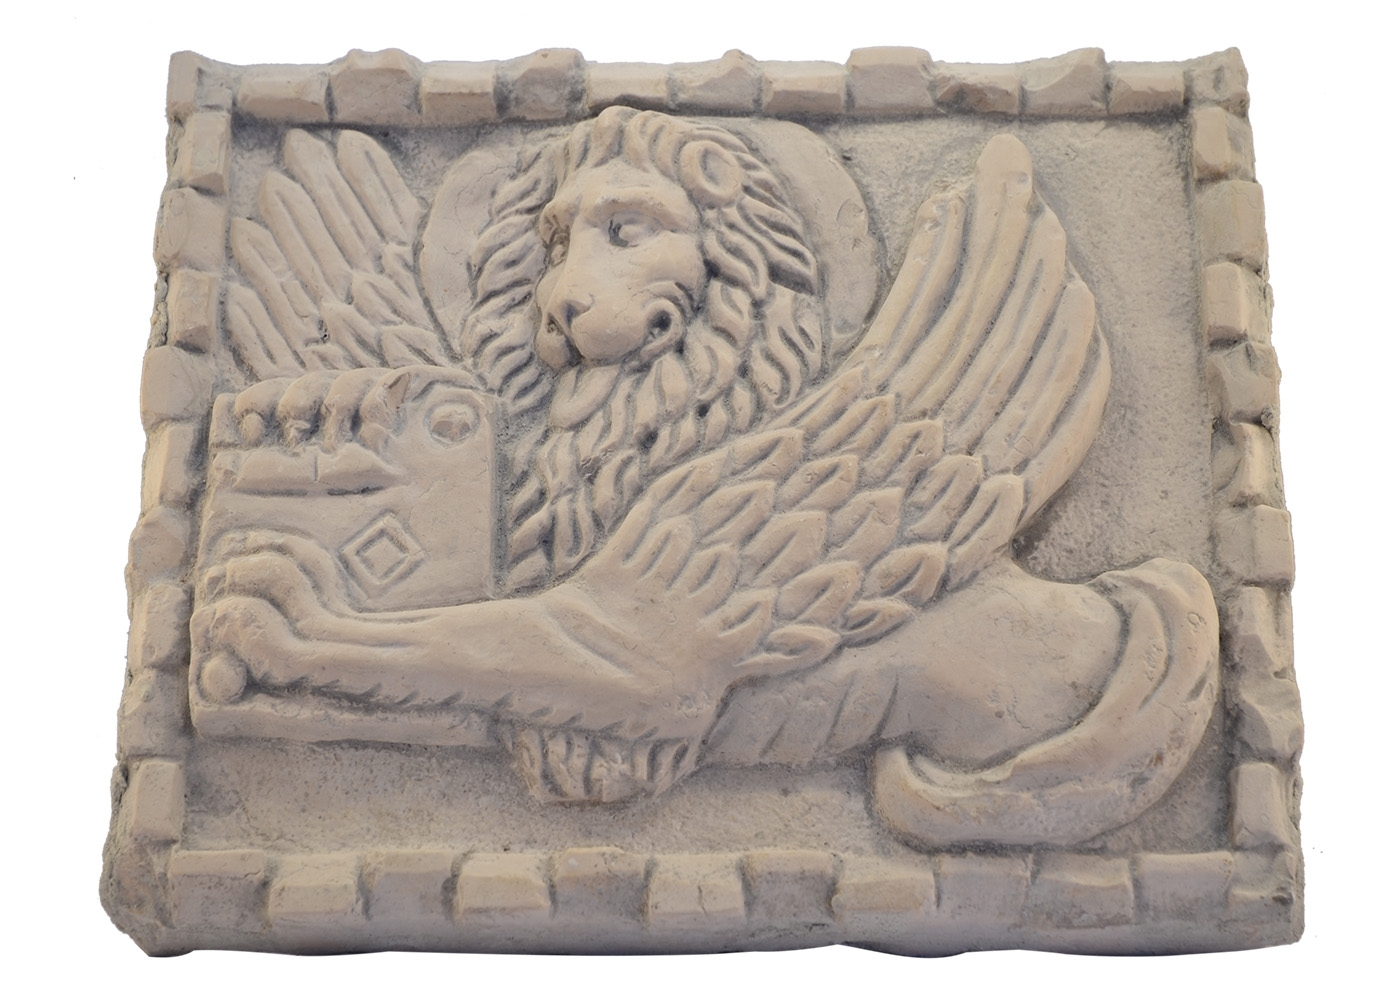 Buy Marble Panel Hand Carved Saint Mark 17457697 | Italy2Us.com